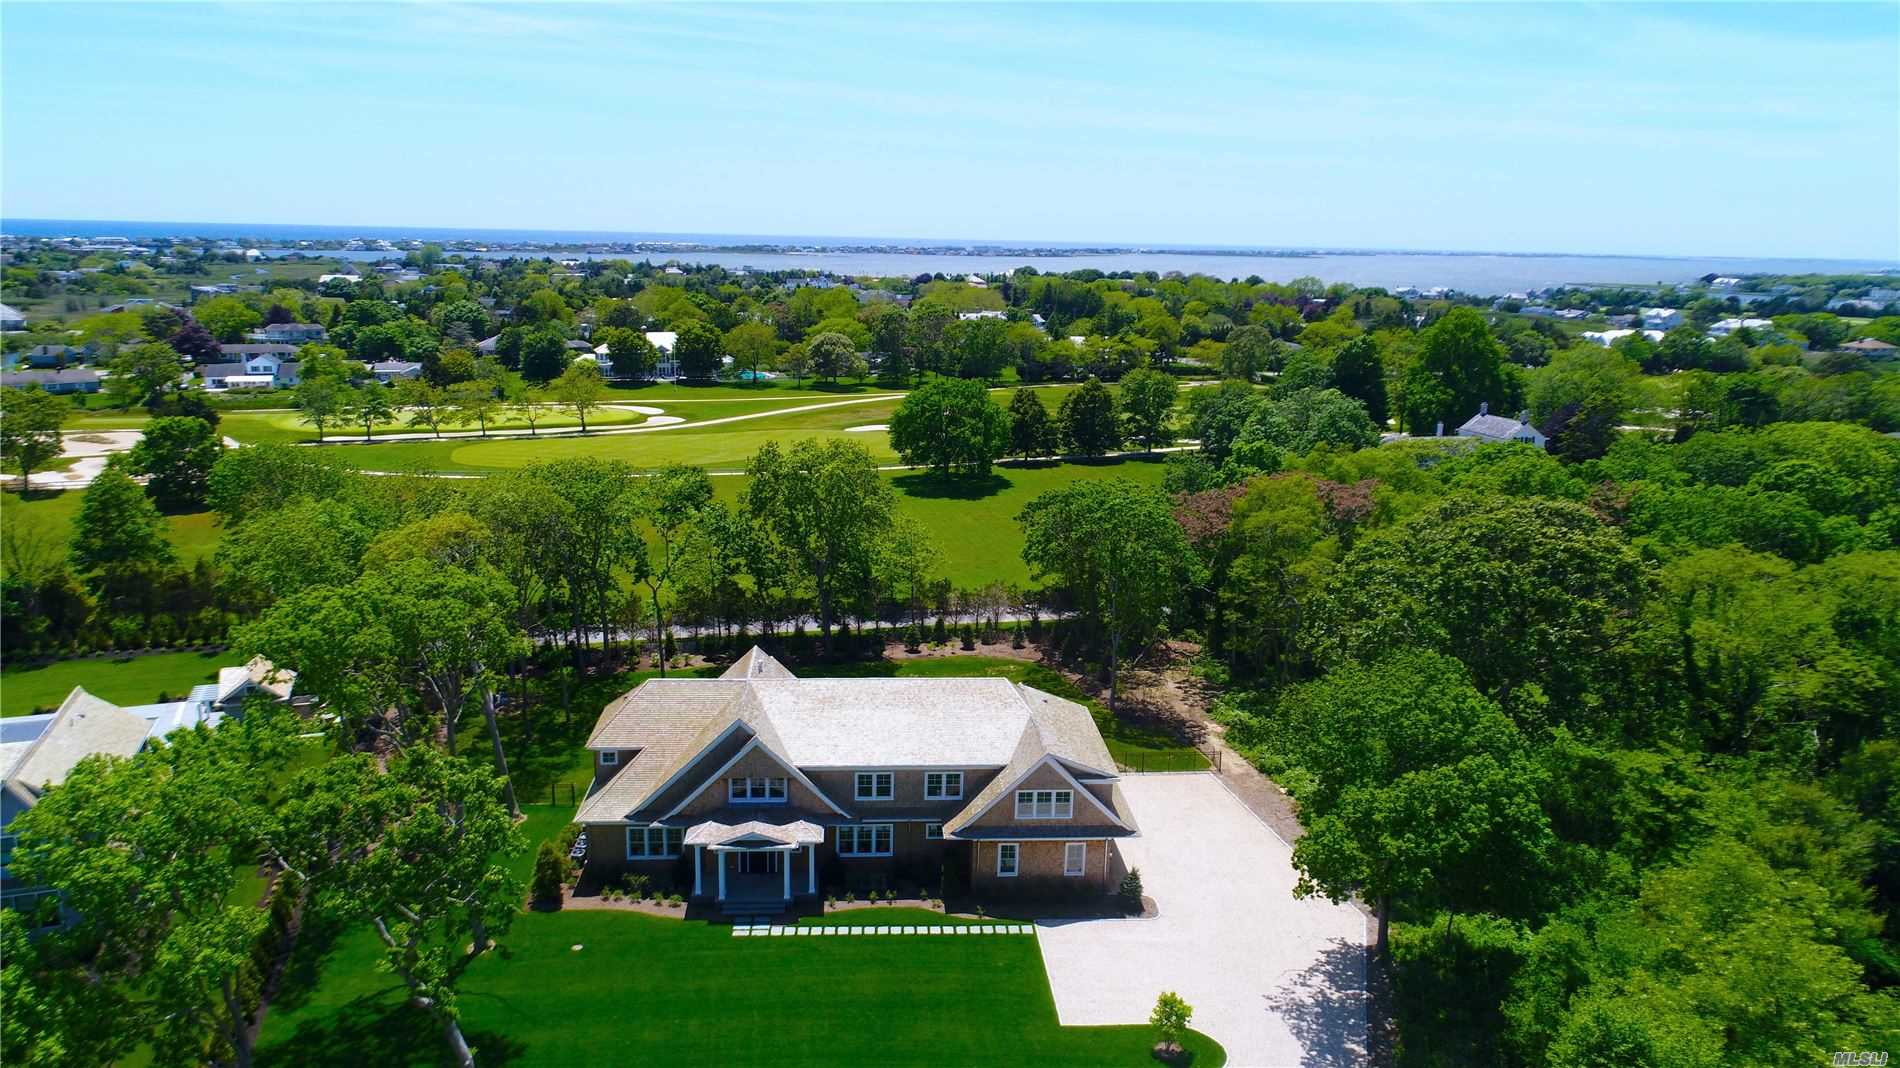 Stunning New Construction In The Heart Of Westhampton Beach Village Produced By Renowned Builder Owen Construction. This Sprawling 5, 800 Sq Ft, Five Bedroom, Five & One Half Bathroom Masterpiece Abuts The Westhampton Country Club. High End Finishes Throughout, Master Suite Features Spa-Like Bathroom, His & Her Closets & Amazing Views Of The Heated Gunite Pool & Golf Course. Four Additional En Suites, Three Car Garage And Extensive Landscaping Make This Home A Dream Come True.